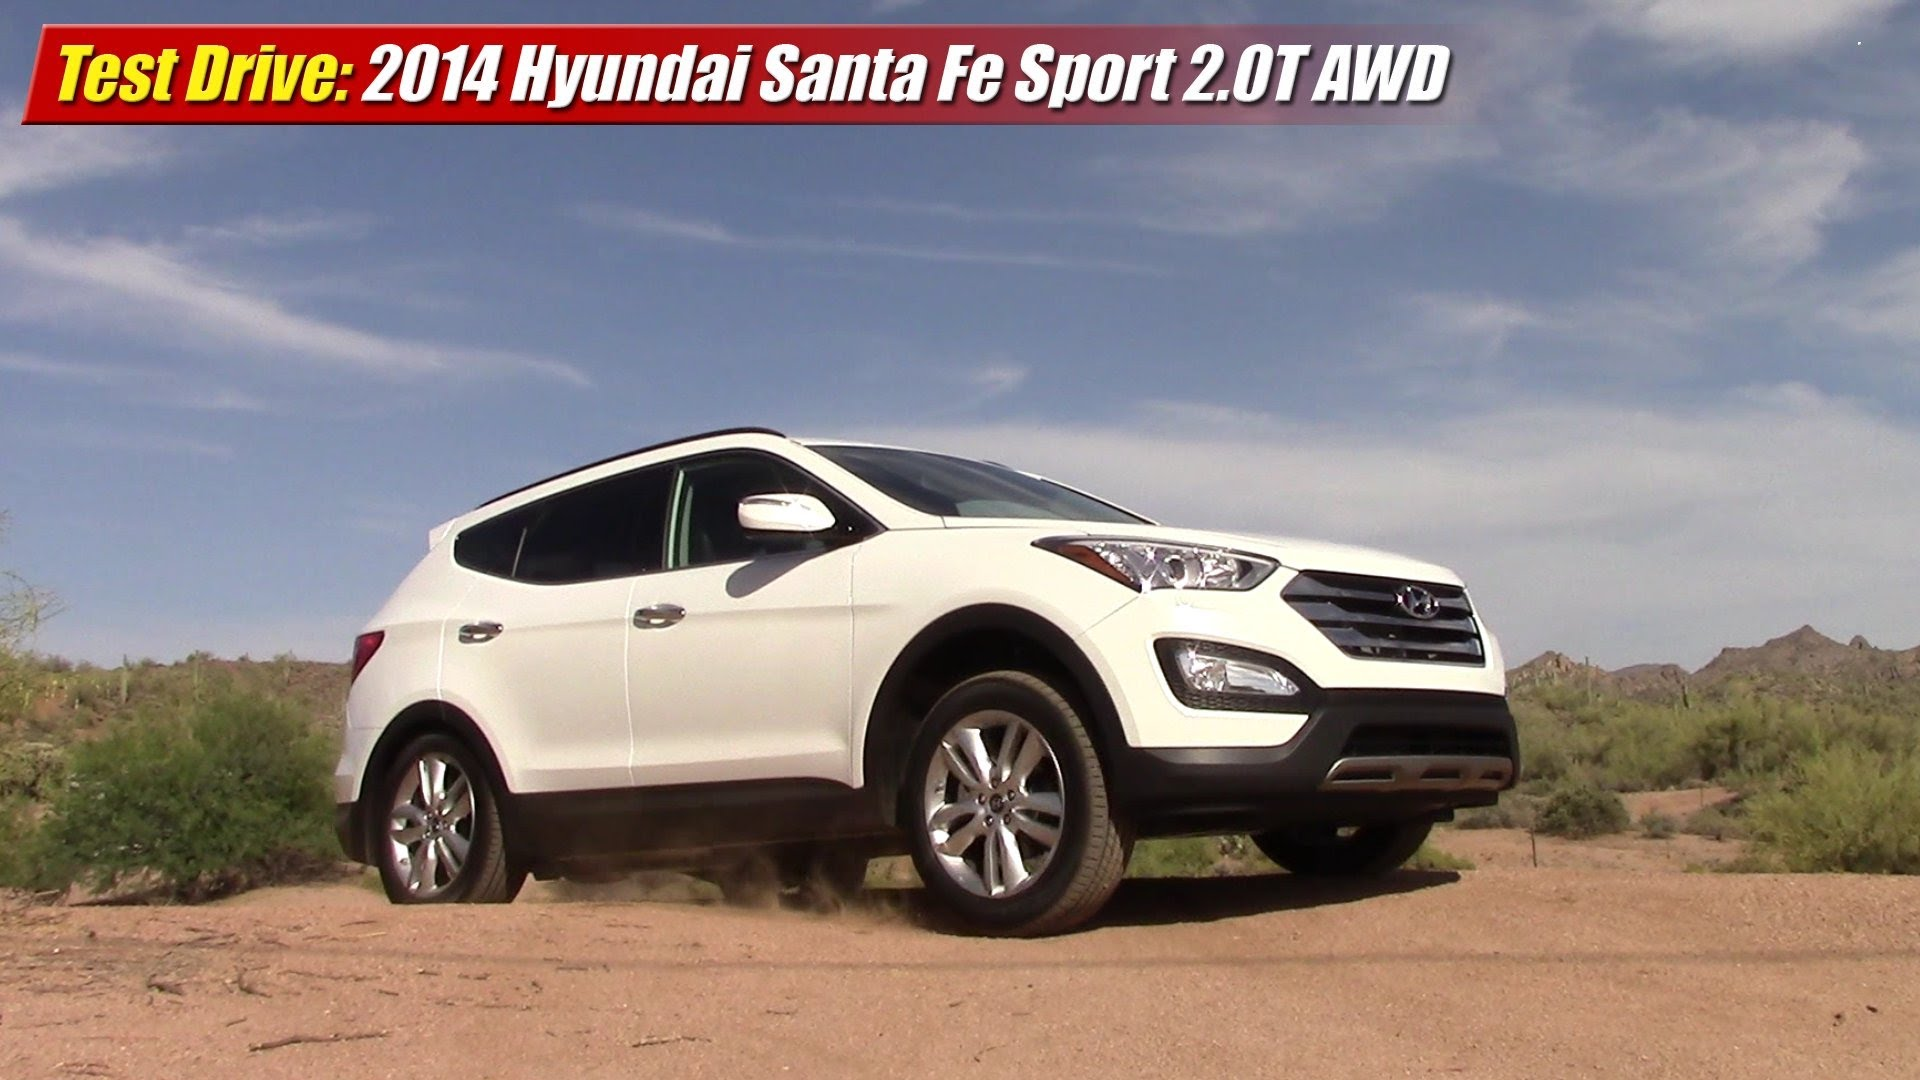 test drive 2014 hyundai santa fe sport 2 0 awd testdriven tv. Black Bedroom Furniture Sets. Home Design Ideas